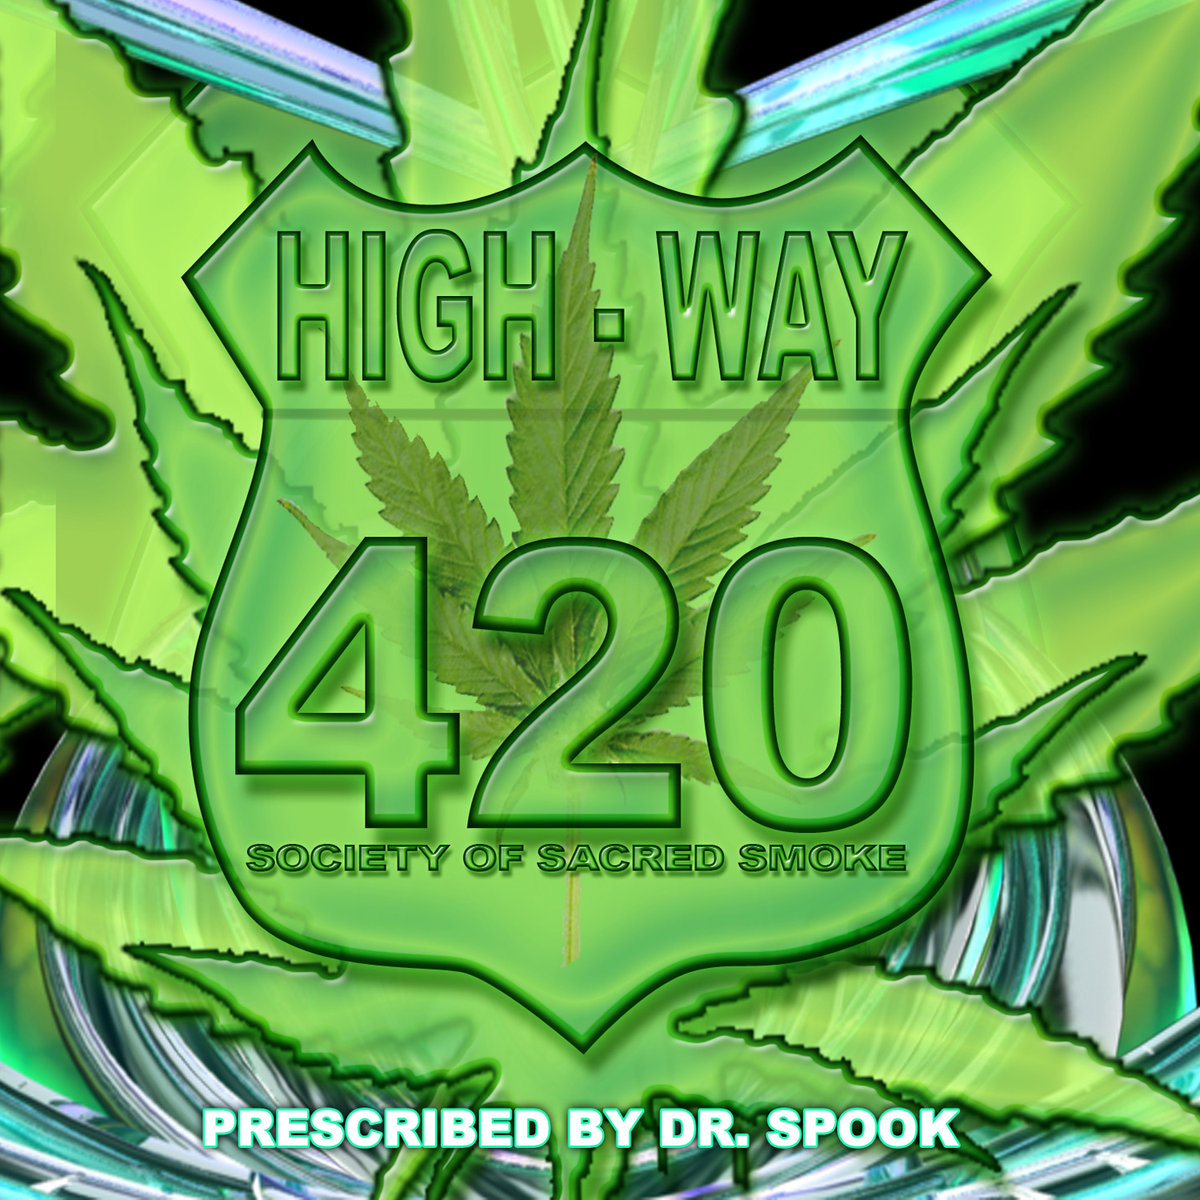 Megadrop, Random, & Helios - Vaporwhere @ 'Various Artists - High-Way 420: Society Of Sacred Smoke (Prescribed by Dr. Spook)' album (electronic, goa)